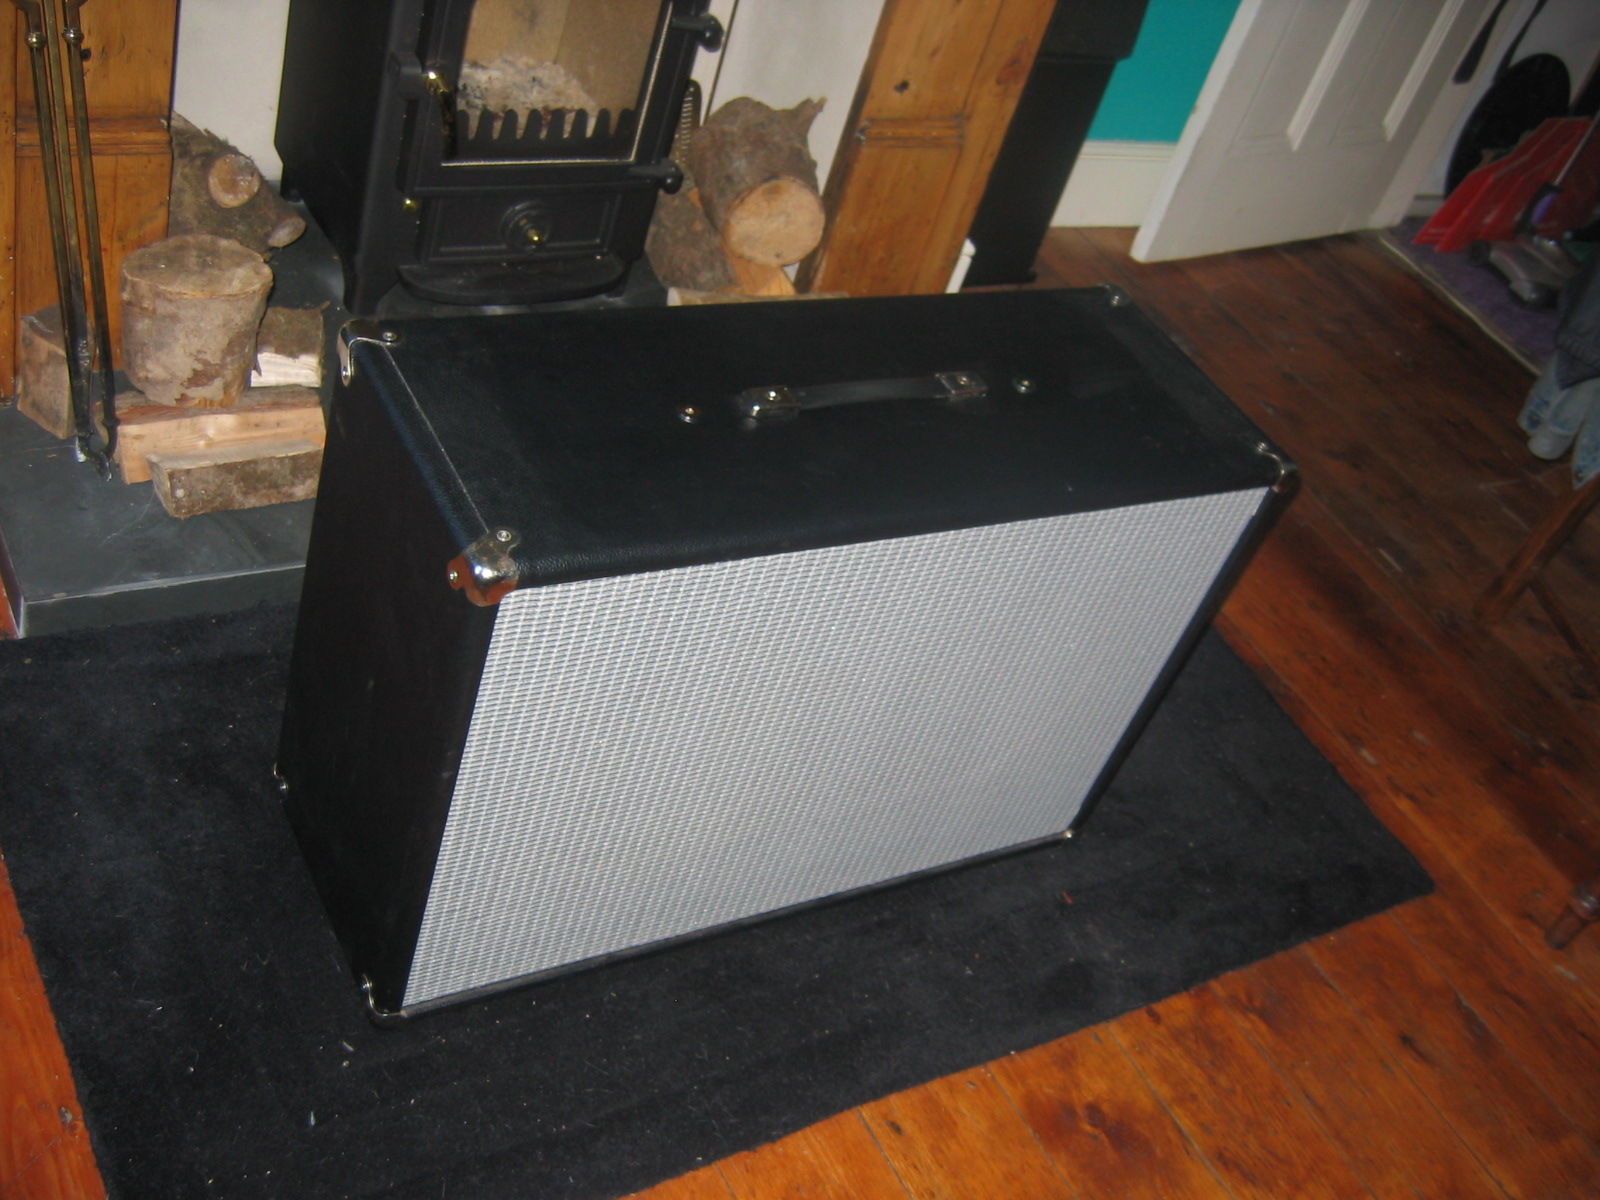 fender would born change late amp some cabinet an pure for in so that released the board these years are forever below after around amps sound bassman is mighty a music was treasured or index